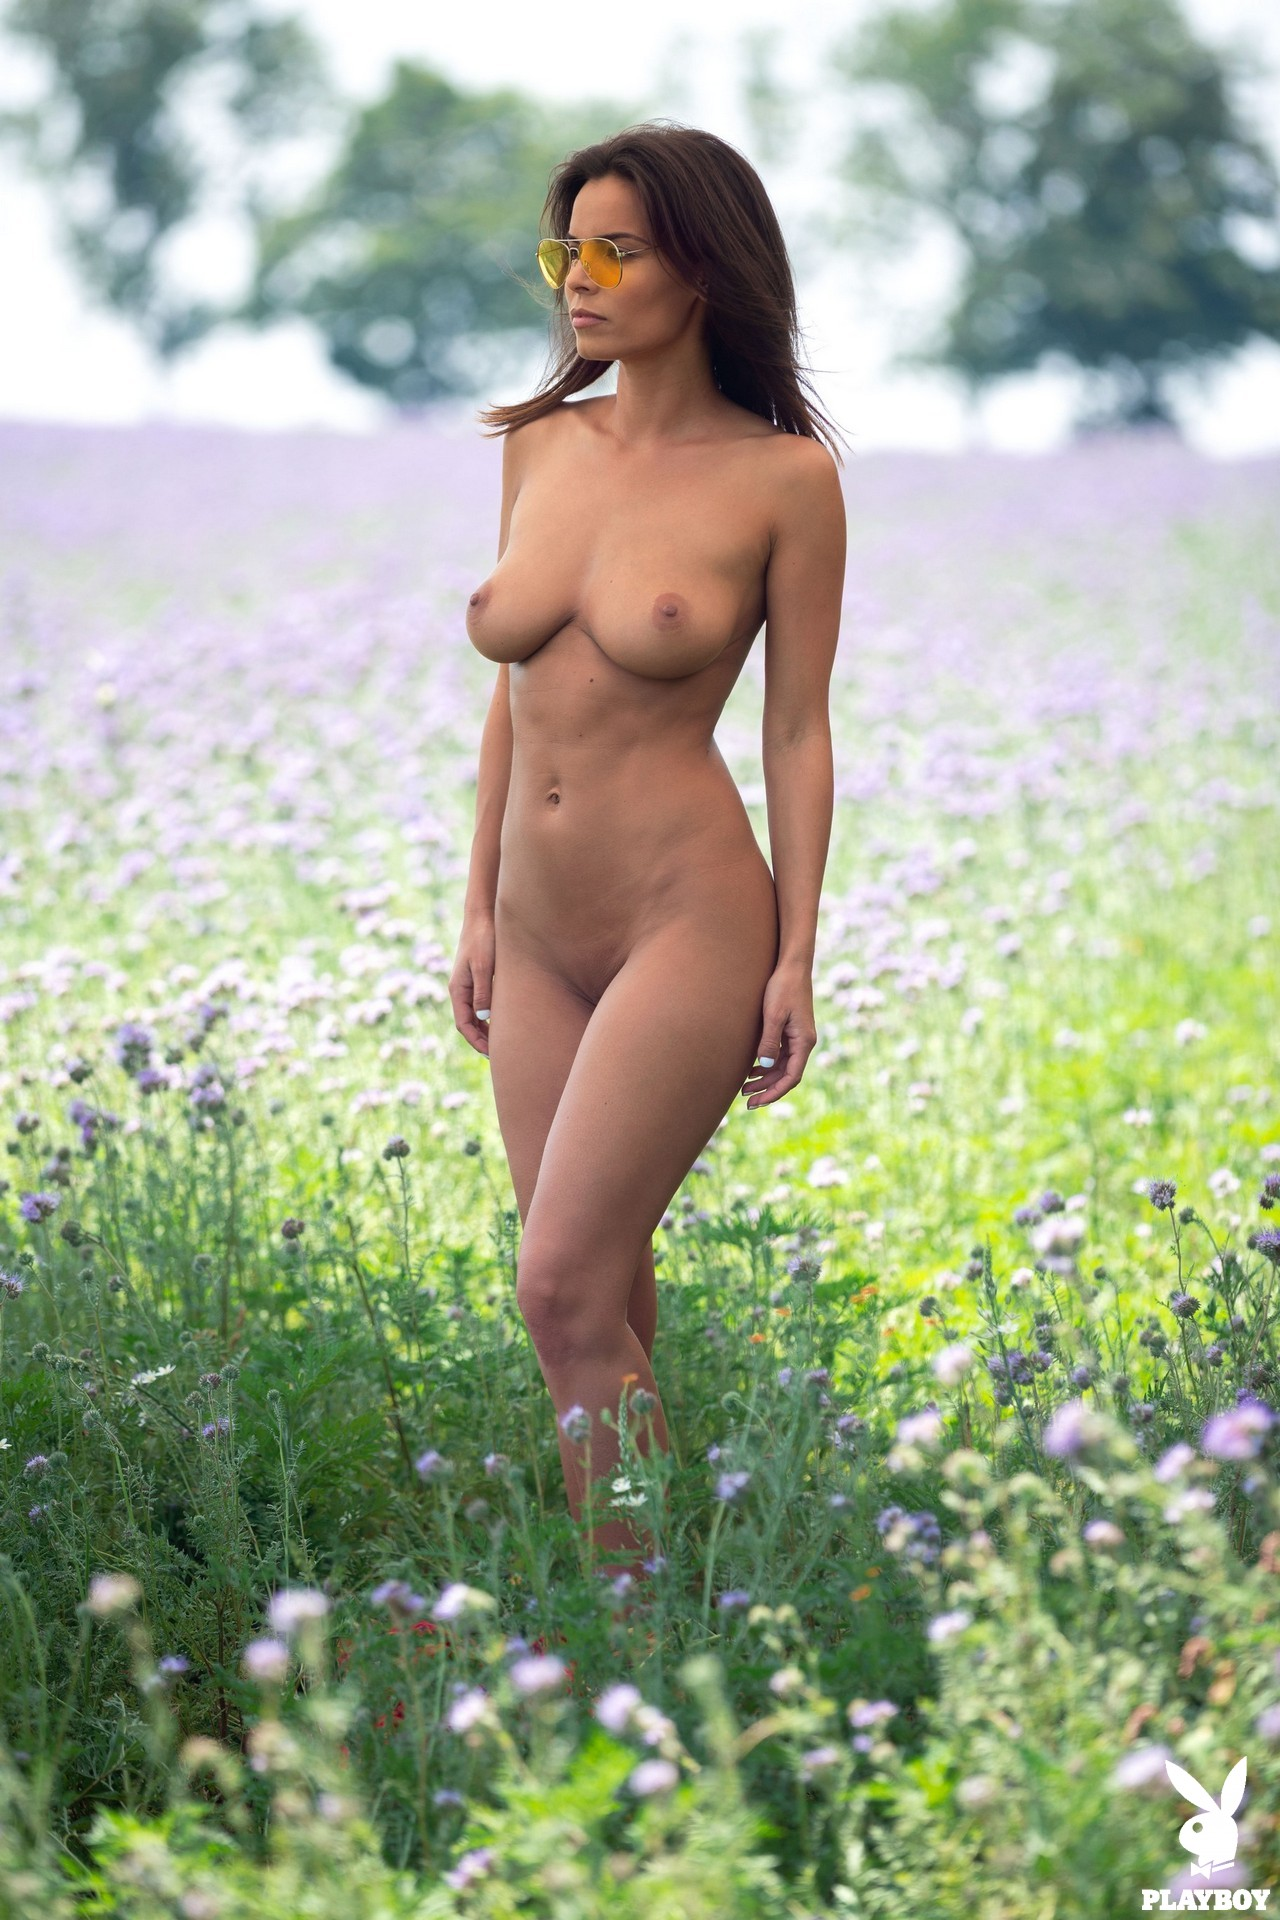 Natalie Costello in Wildly Captivating - Playboy Plus 8